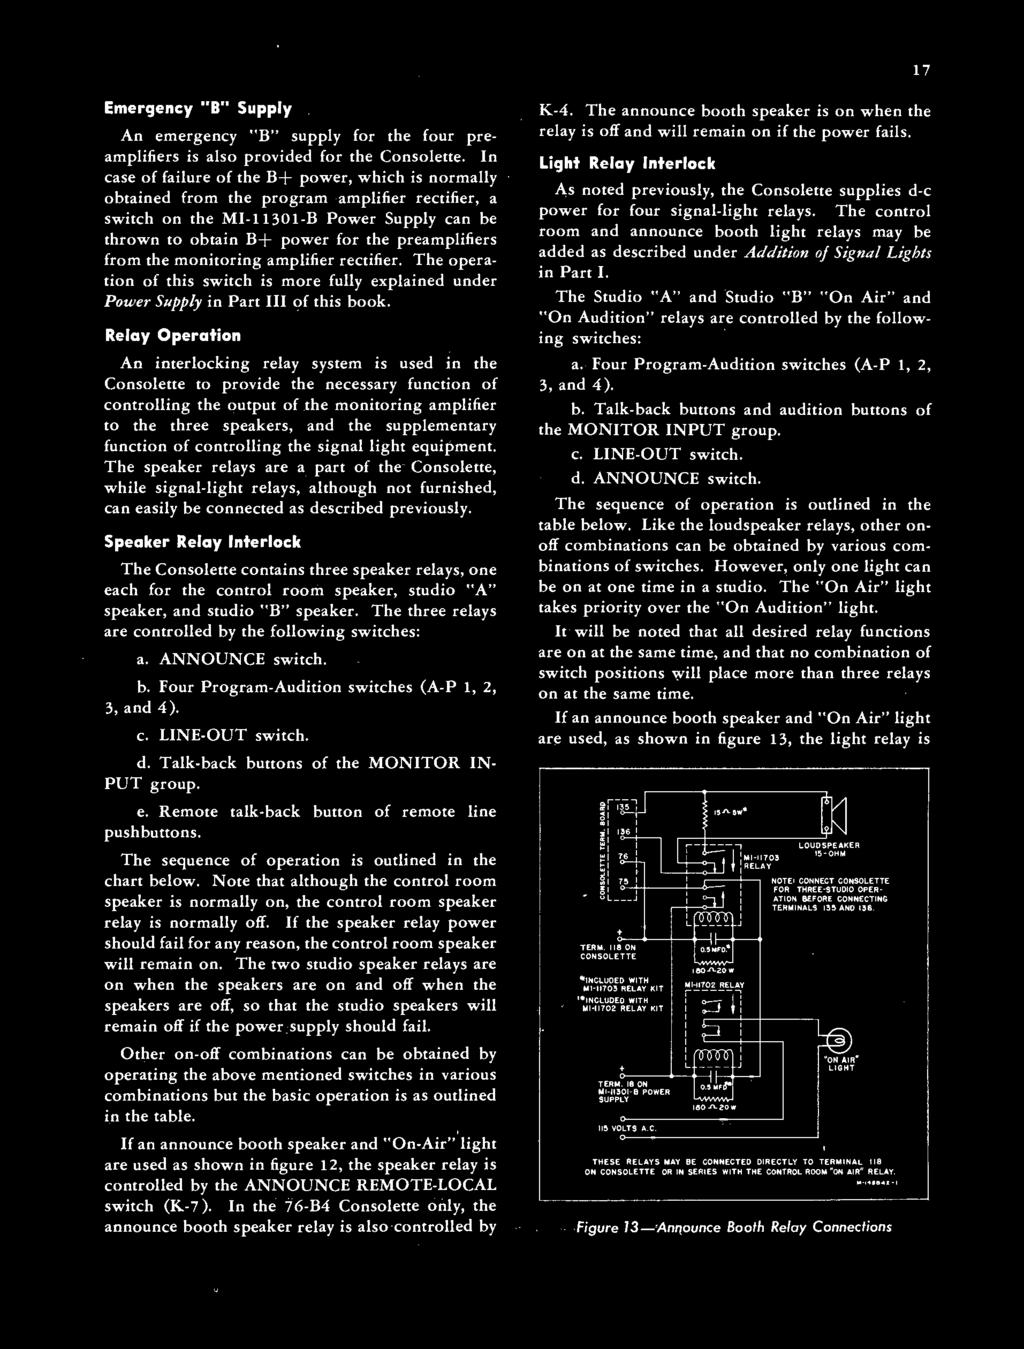 Rca Consolette Type 76 B2 Mi B B4 C Power Supply Relay Switch Speaker From The Monitoring Amplifier Rectifier Operation Of This Is More Fully Explained Under